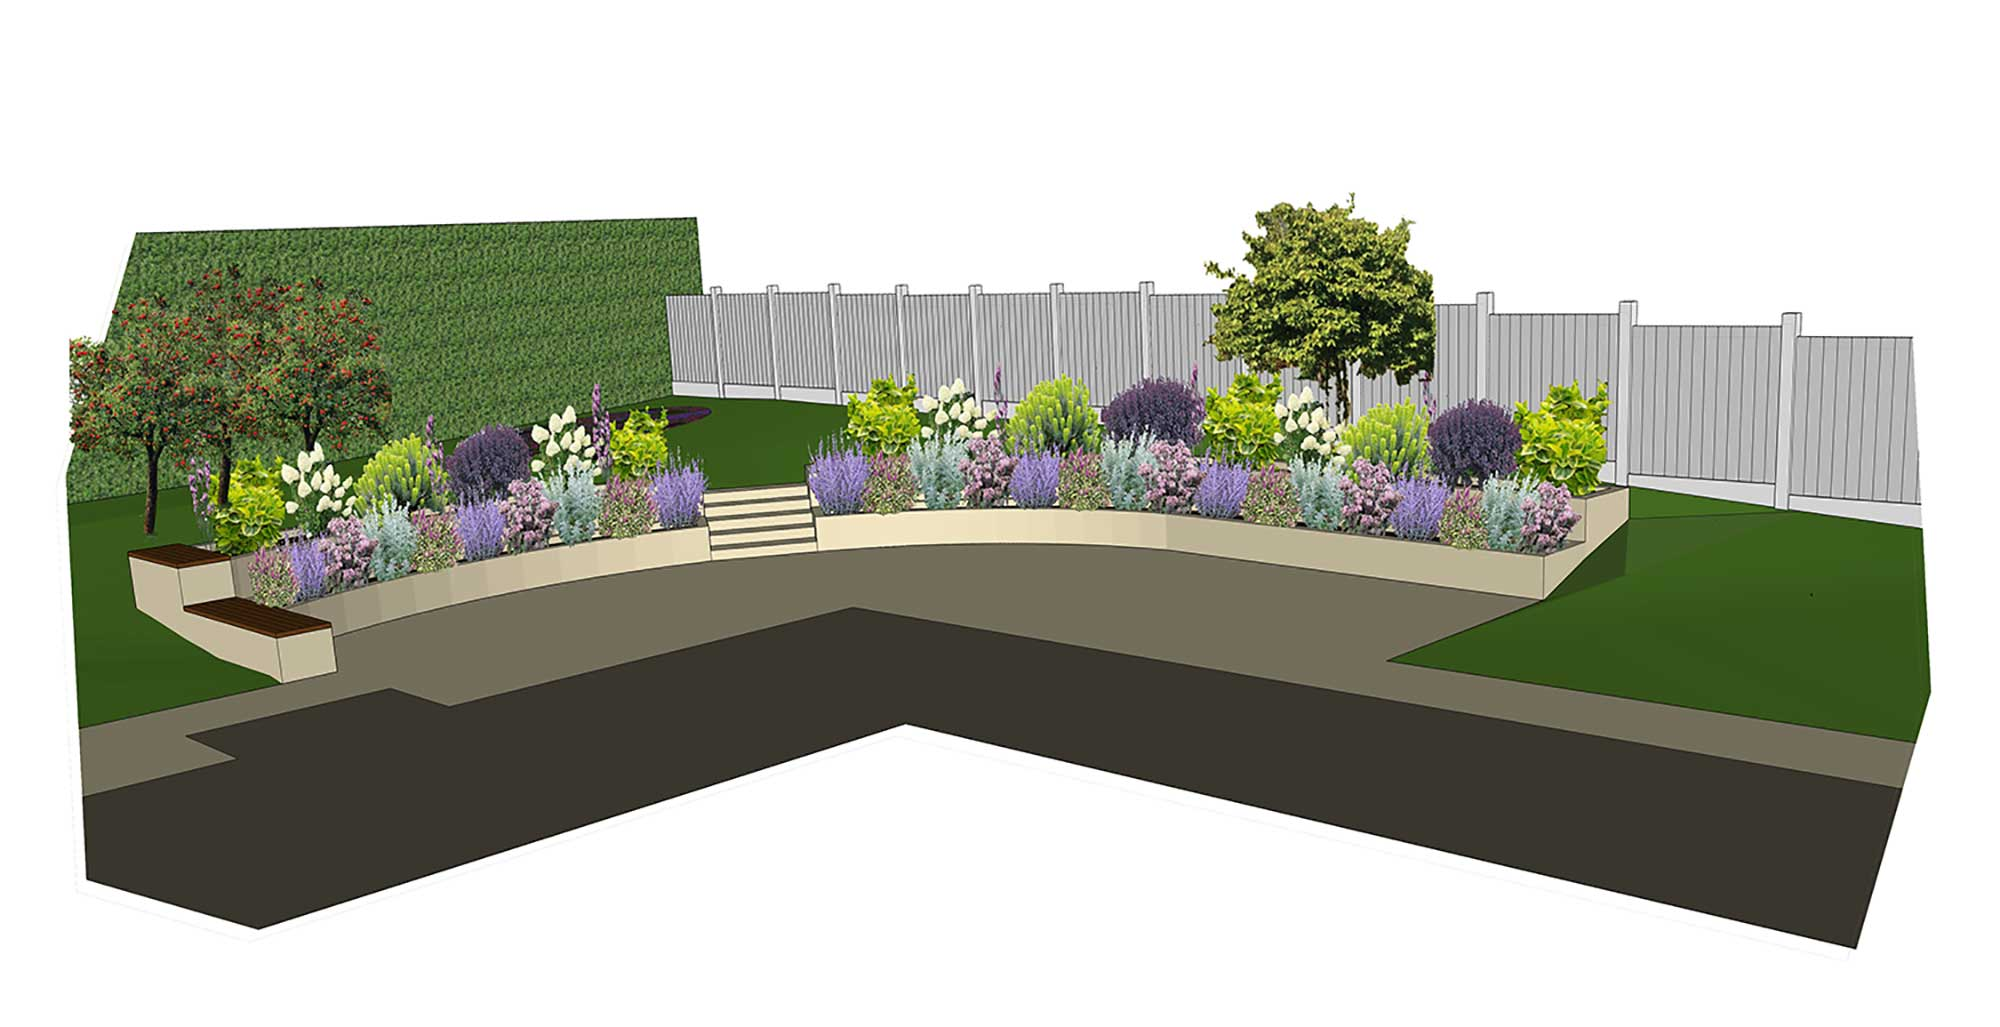 Rear garden design visualisation garden design layout for Garden designs uk